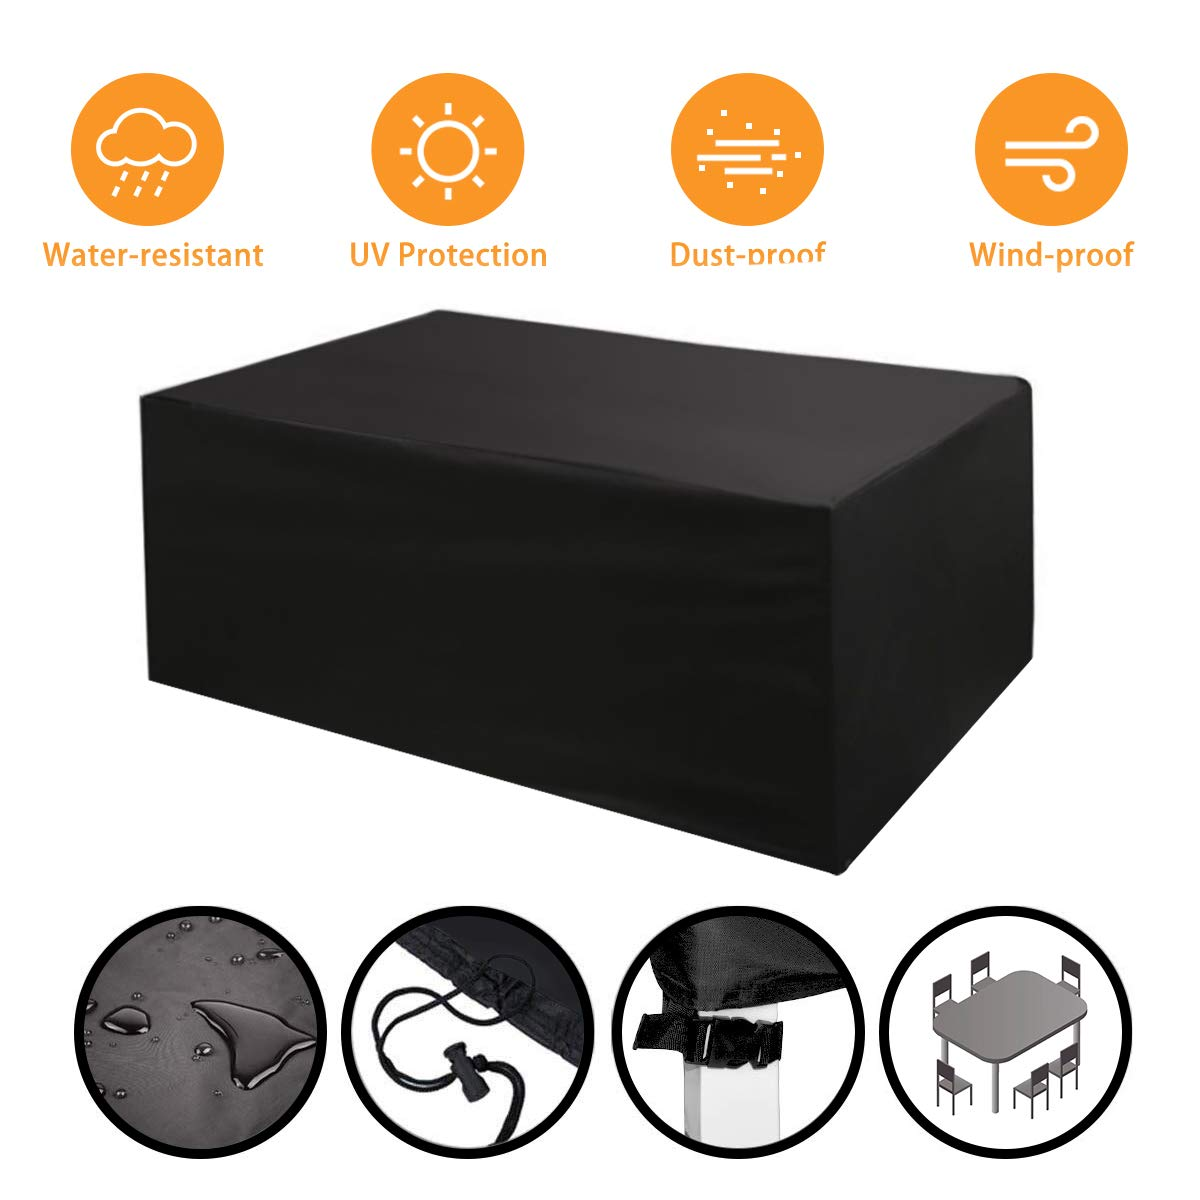 for Sofas and Chairs Patio Furniture Covers Waterproof - Black 240x160x100cm PVC NASUM Garden Furniture Covers Furniture Cover Rectangular//Oval Cover Windproof and Anti-UV